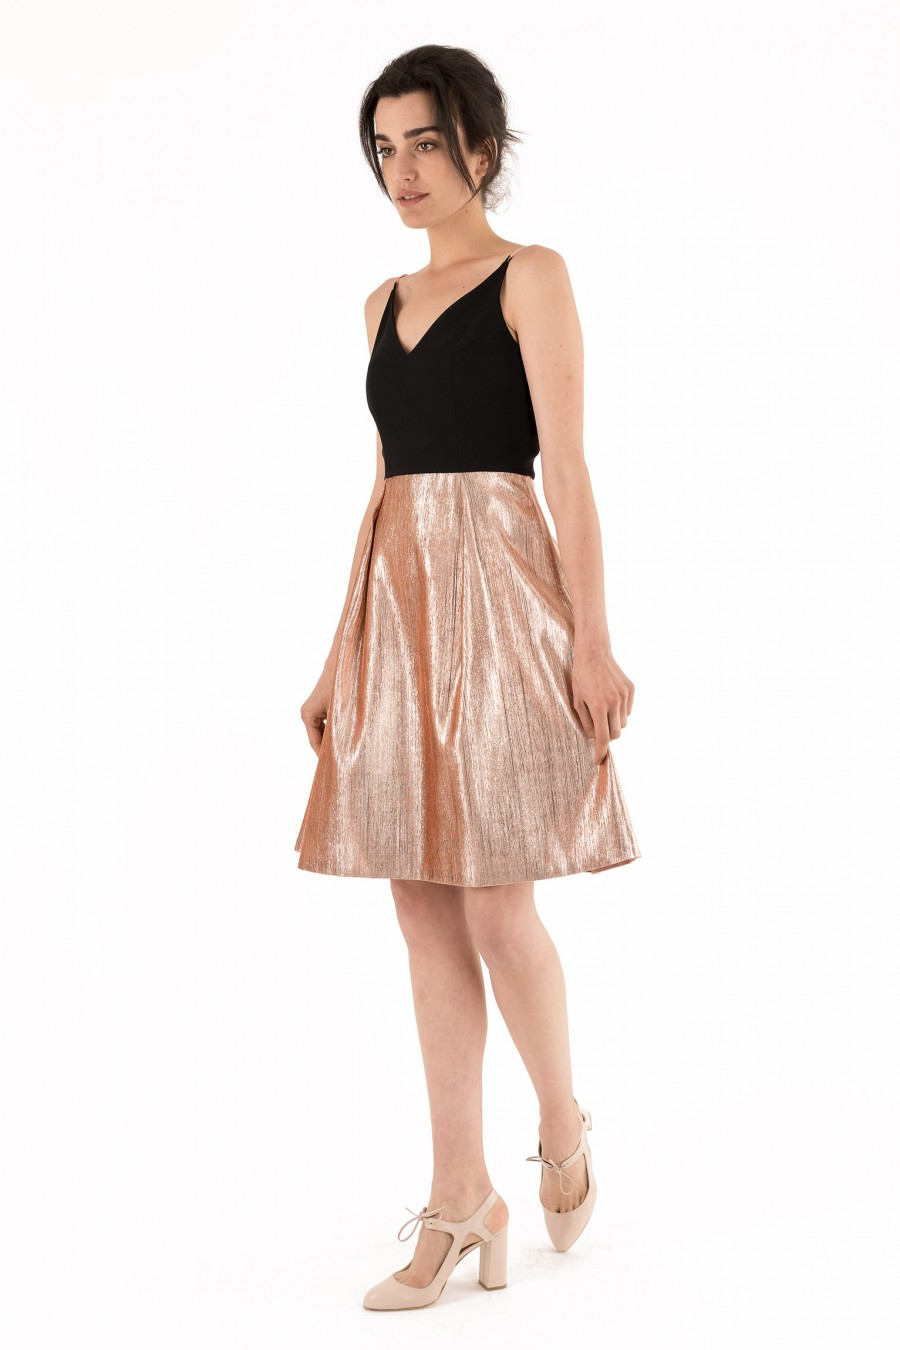 Dress with black top and golden skirt